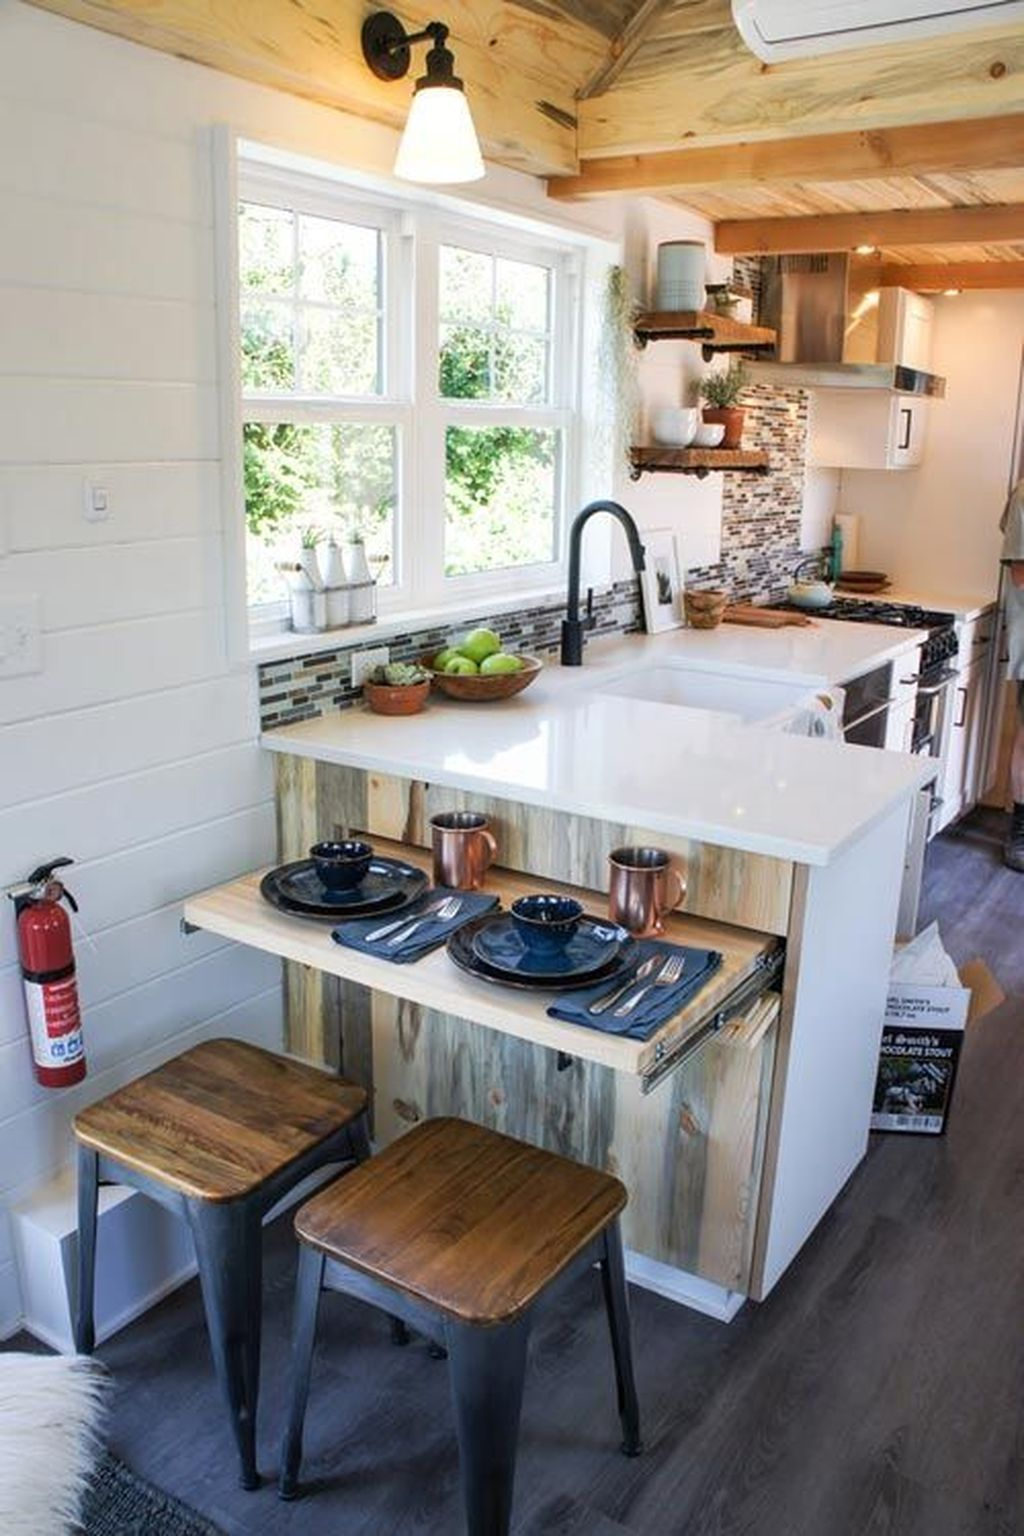 30+ Lovely Tiny House Kitchen Storage Ideas images